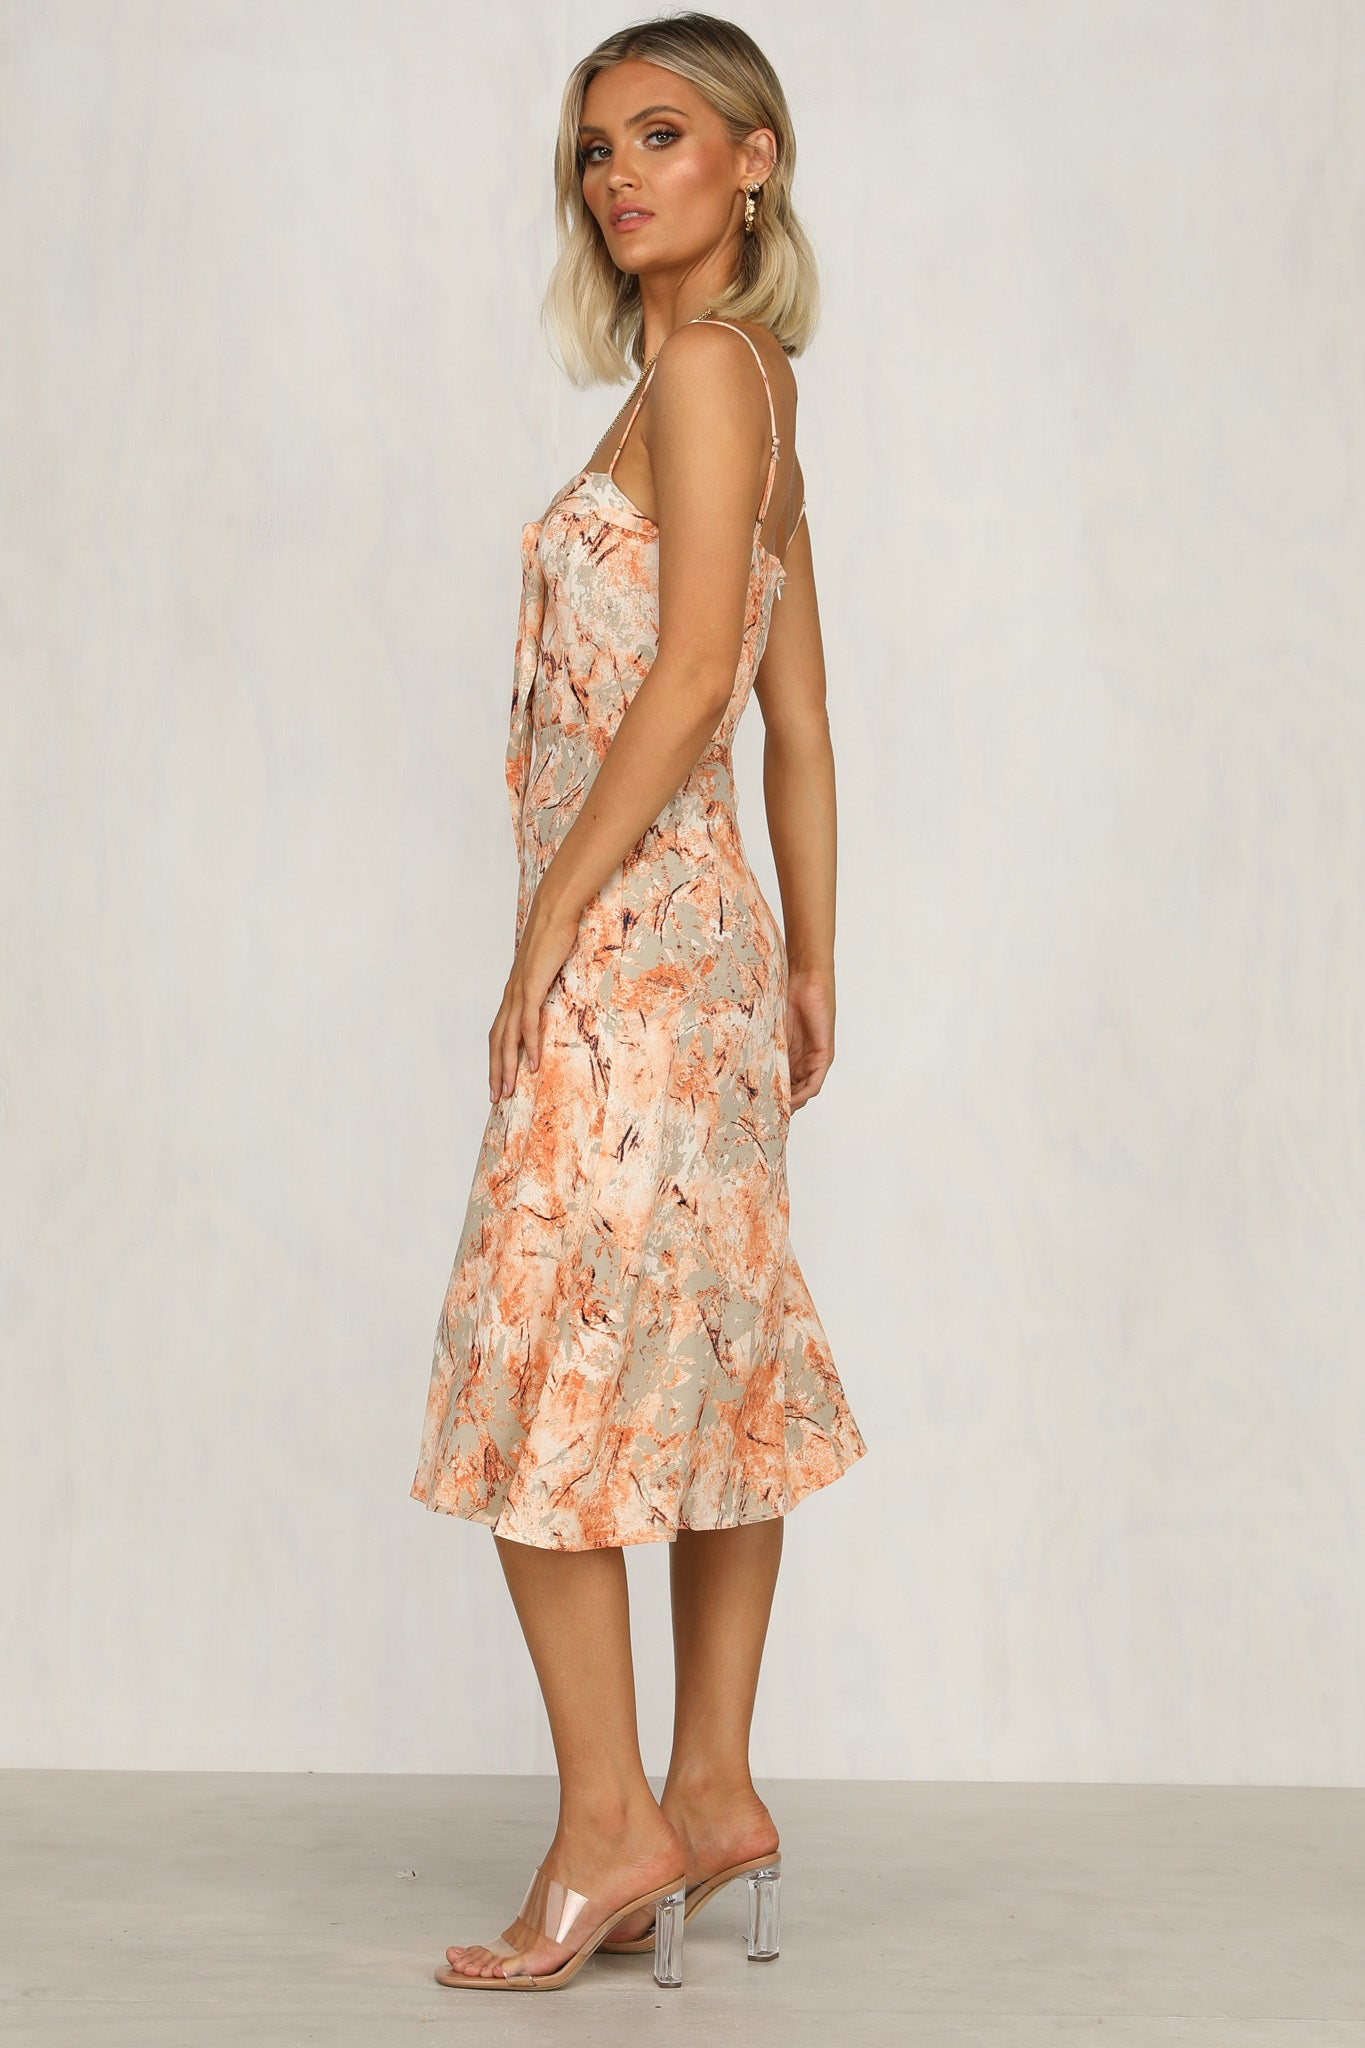 Best Friends Dress (Peach)